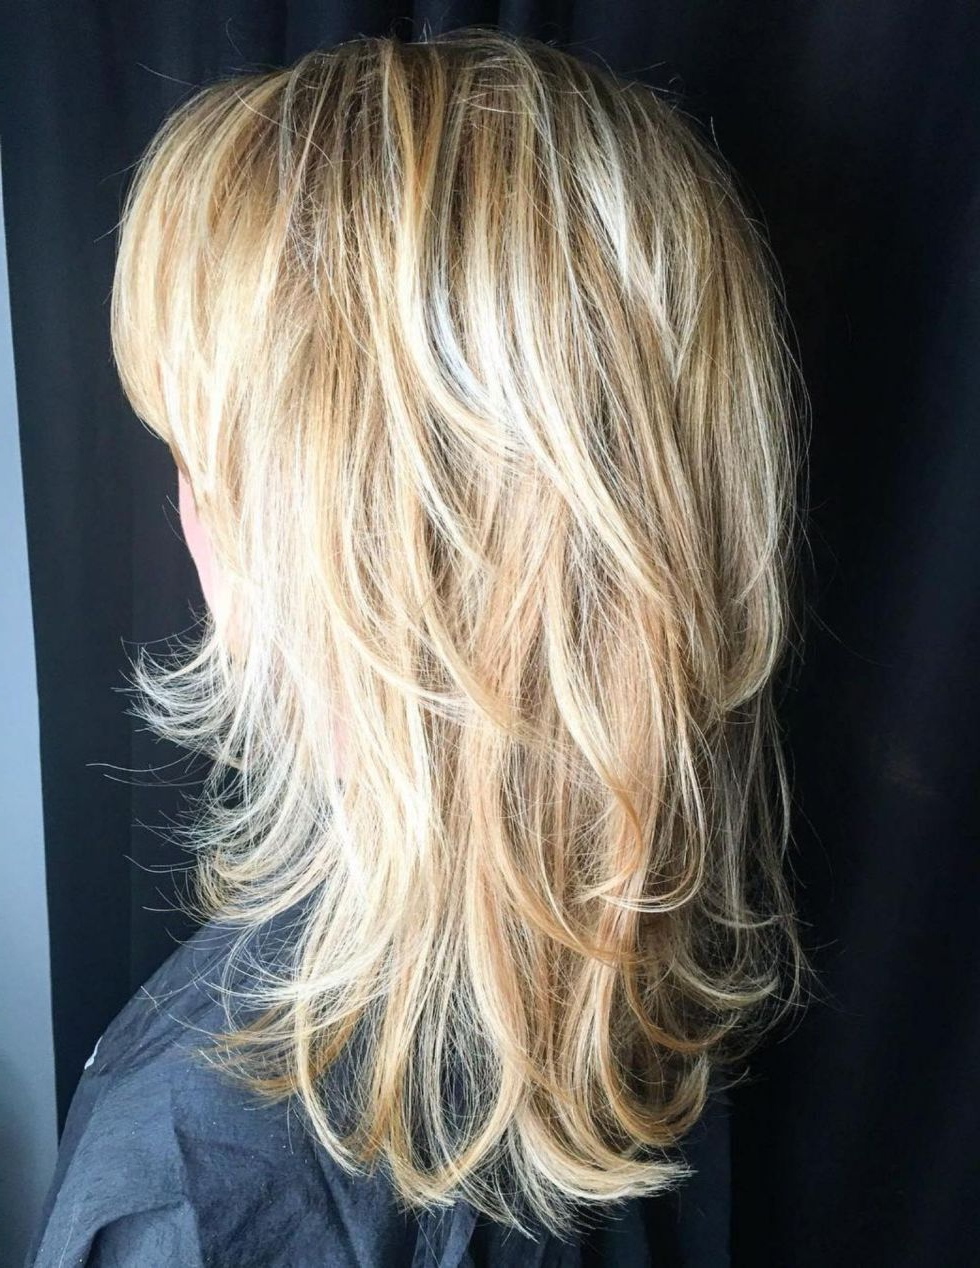 60 Lovely Long Shag Haircuts For Effortless Stylish Looks In Pertaining To Most Current Blonde Shag Haircuts With Layers (View 2 of 20)